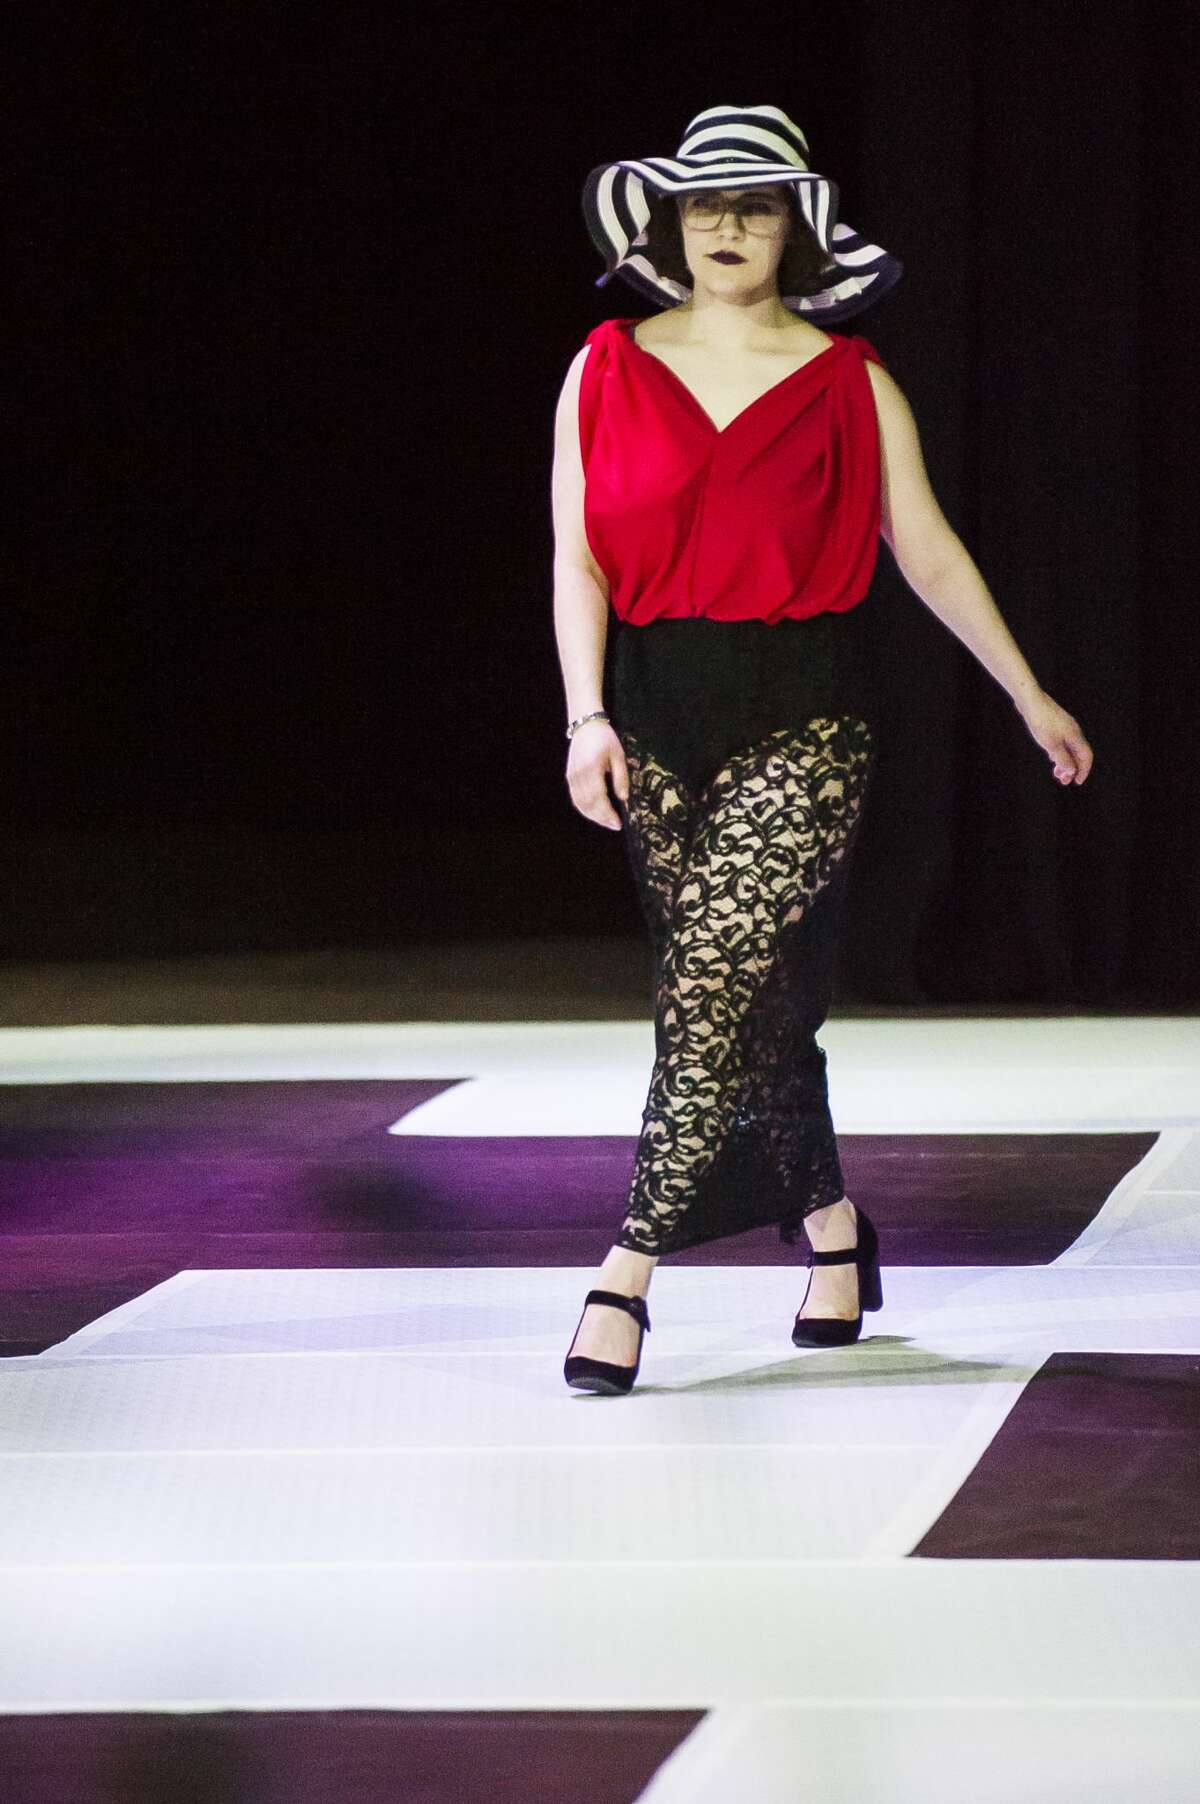 Northwood student Emily Williams models one of her designs during the 2019 Northwood University Style Show on Friday, April 12, 2019 at Northwood. (Katy Kildee/kkildee@mdn.net)